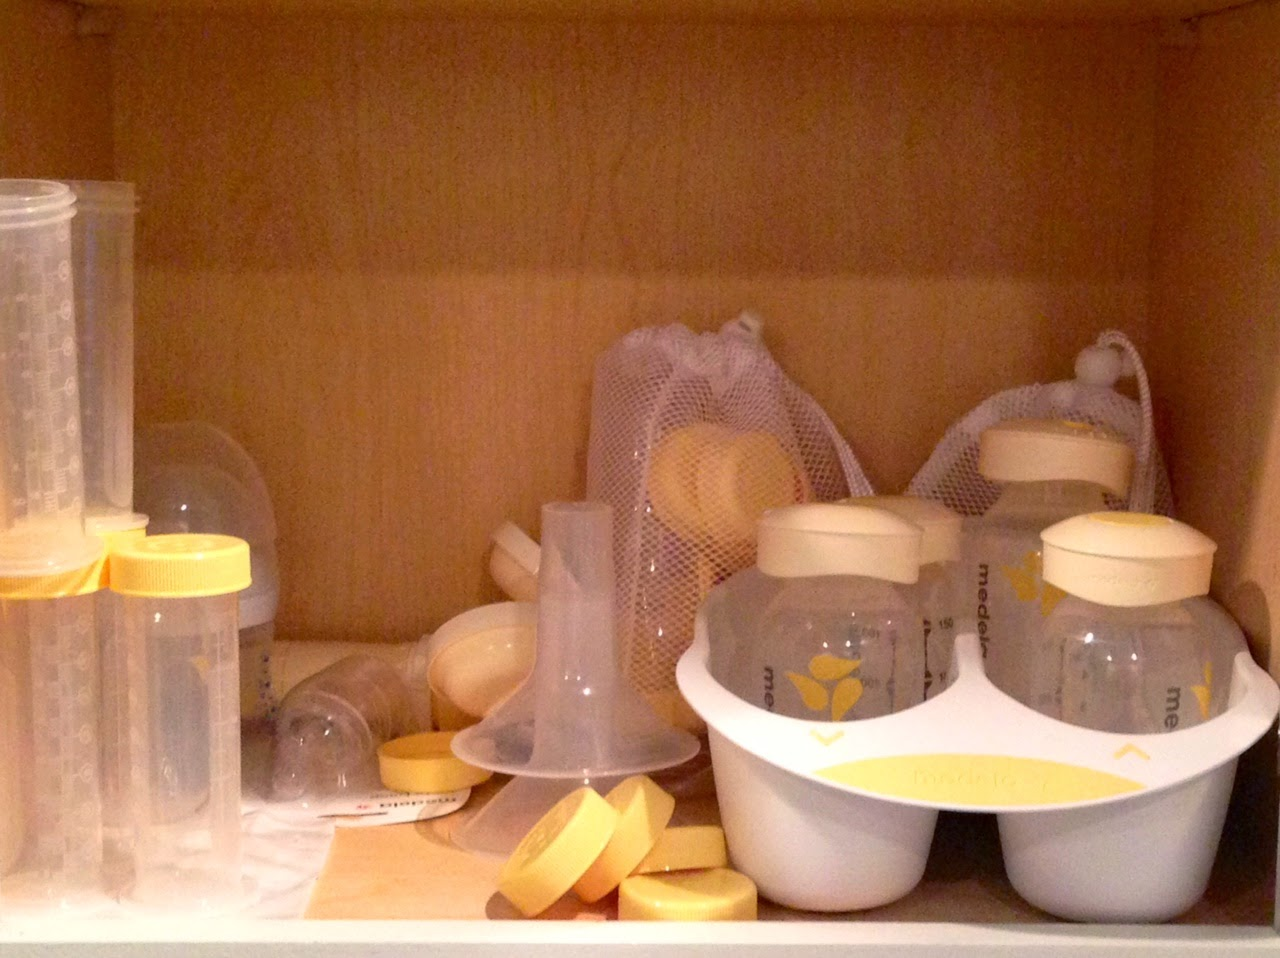 Why #breastfeeding is hard: so many pump parts to store!